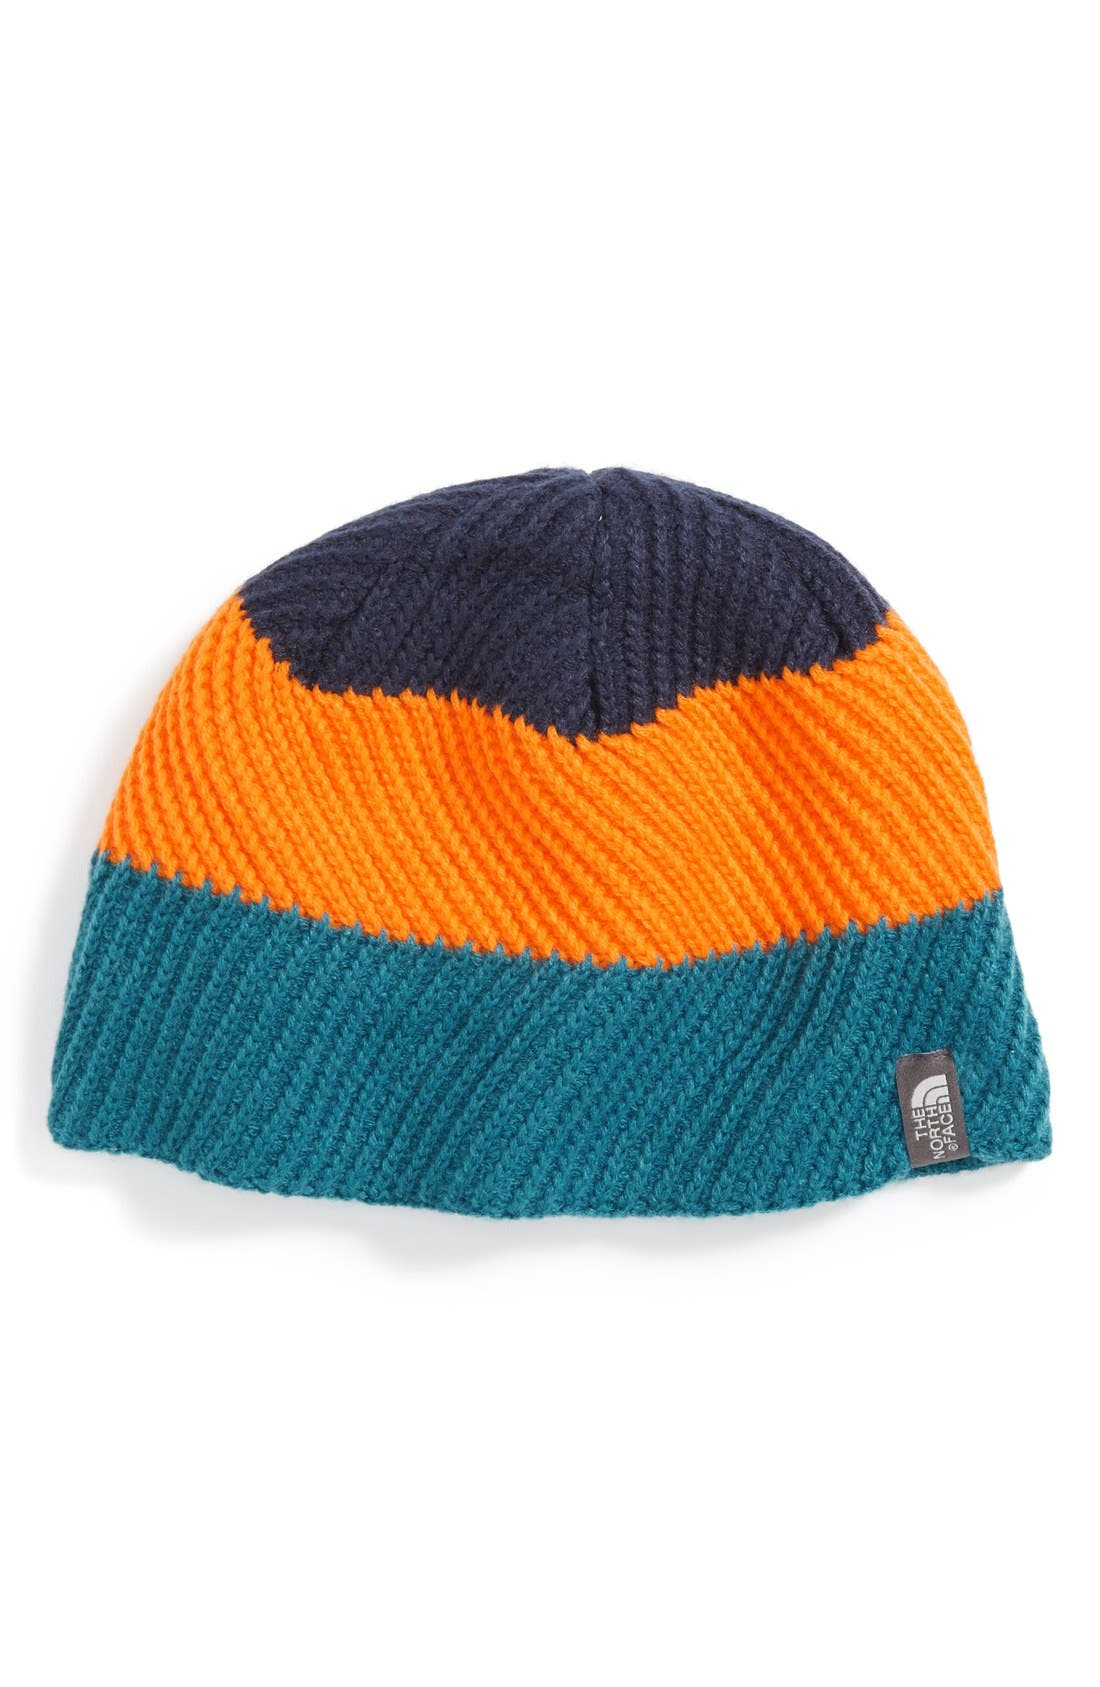 Alternate Image 1 Selected - The North Face 'Youth Gone Wild' Beanie (Big Boys)